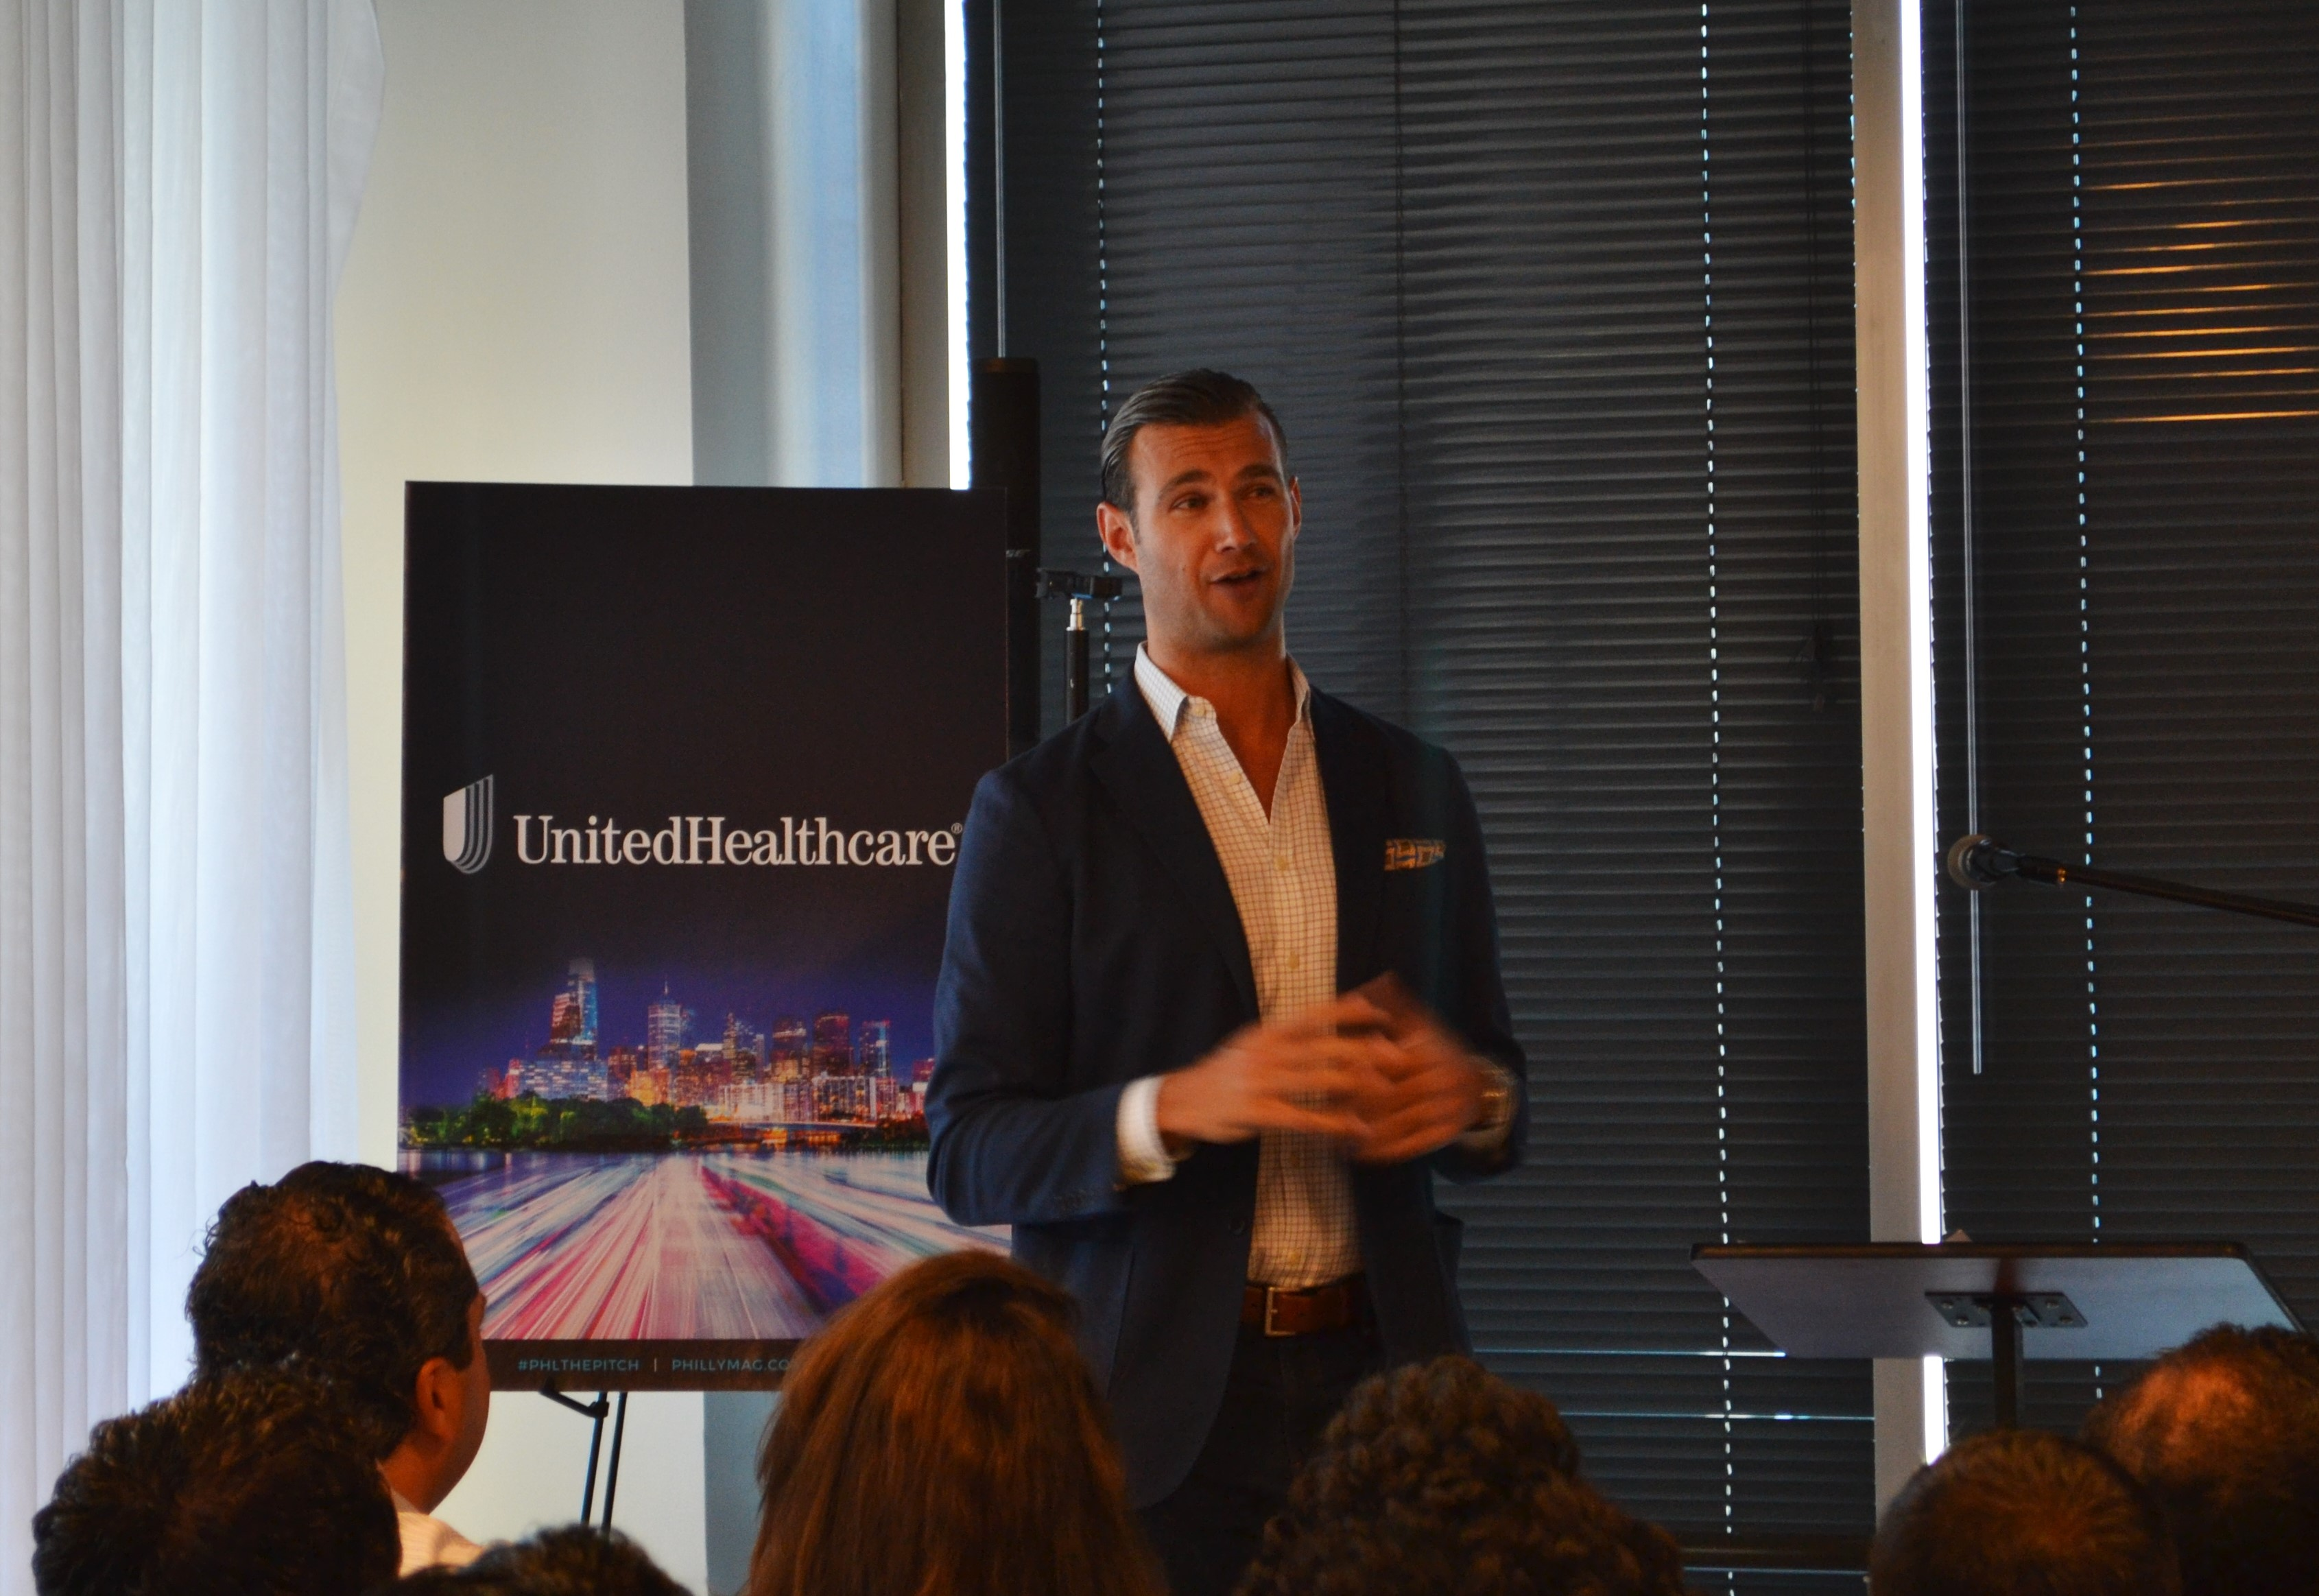 Nick Bayer tells the audience about his experience as an entrepreneur in Philly.